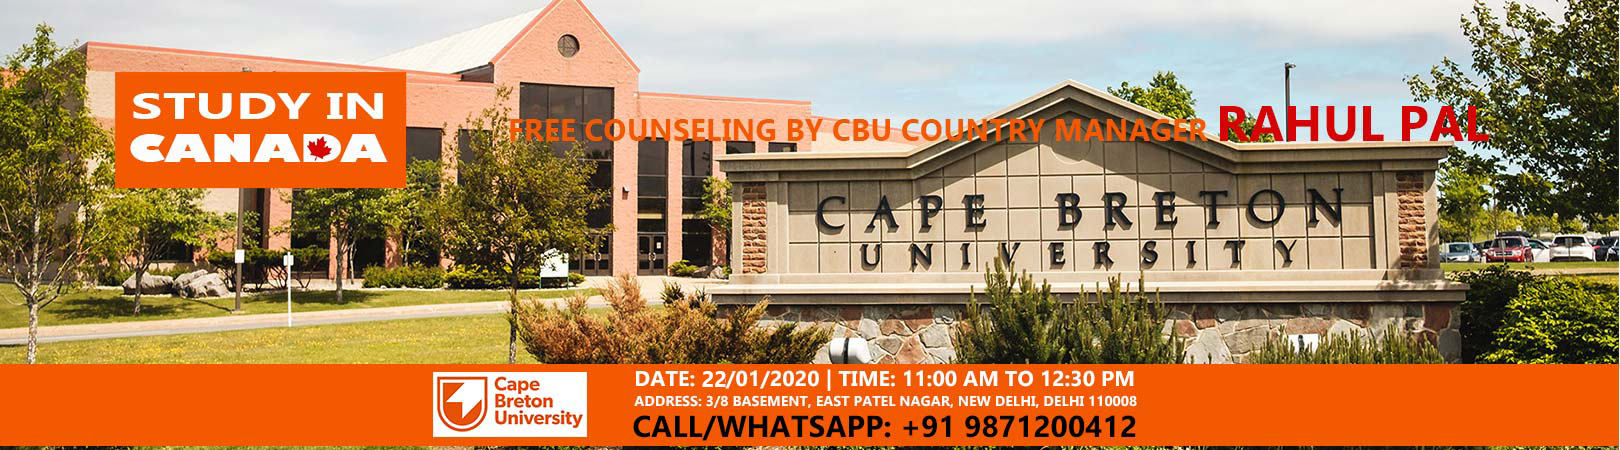 Study in Canada | Free Counseling by CBU Country Manager – Rahul Pal